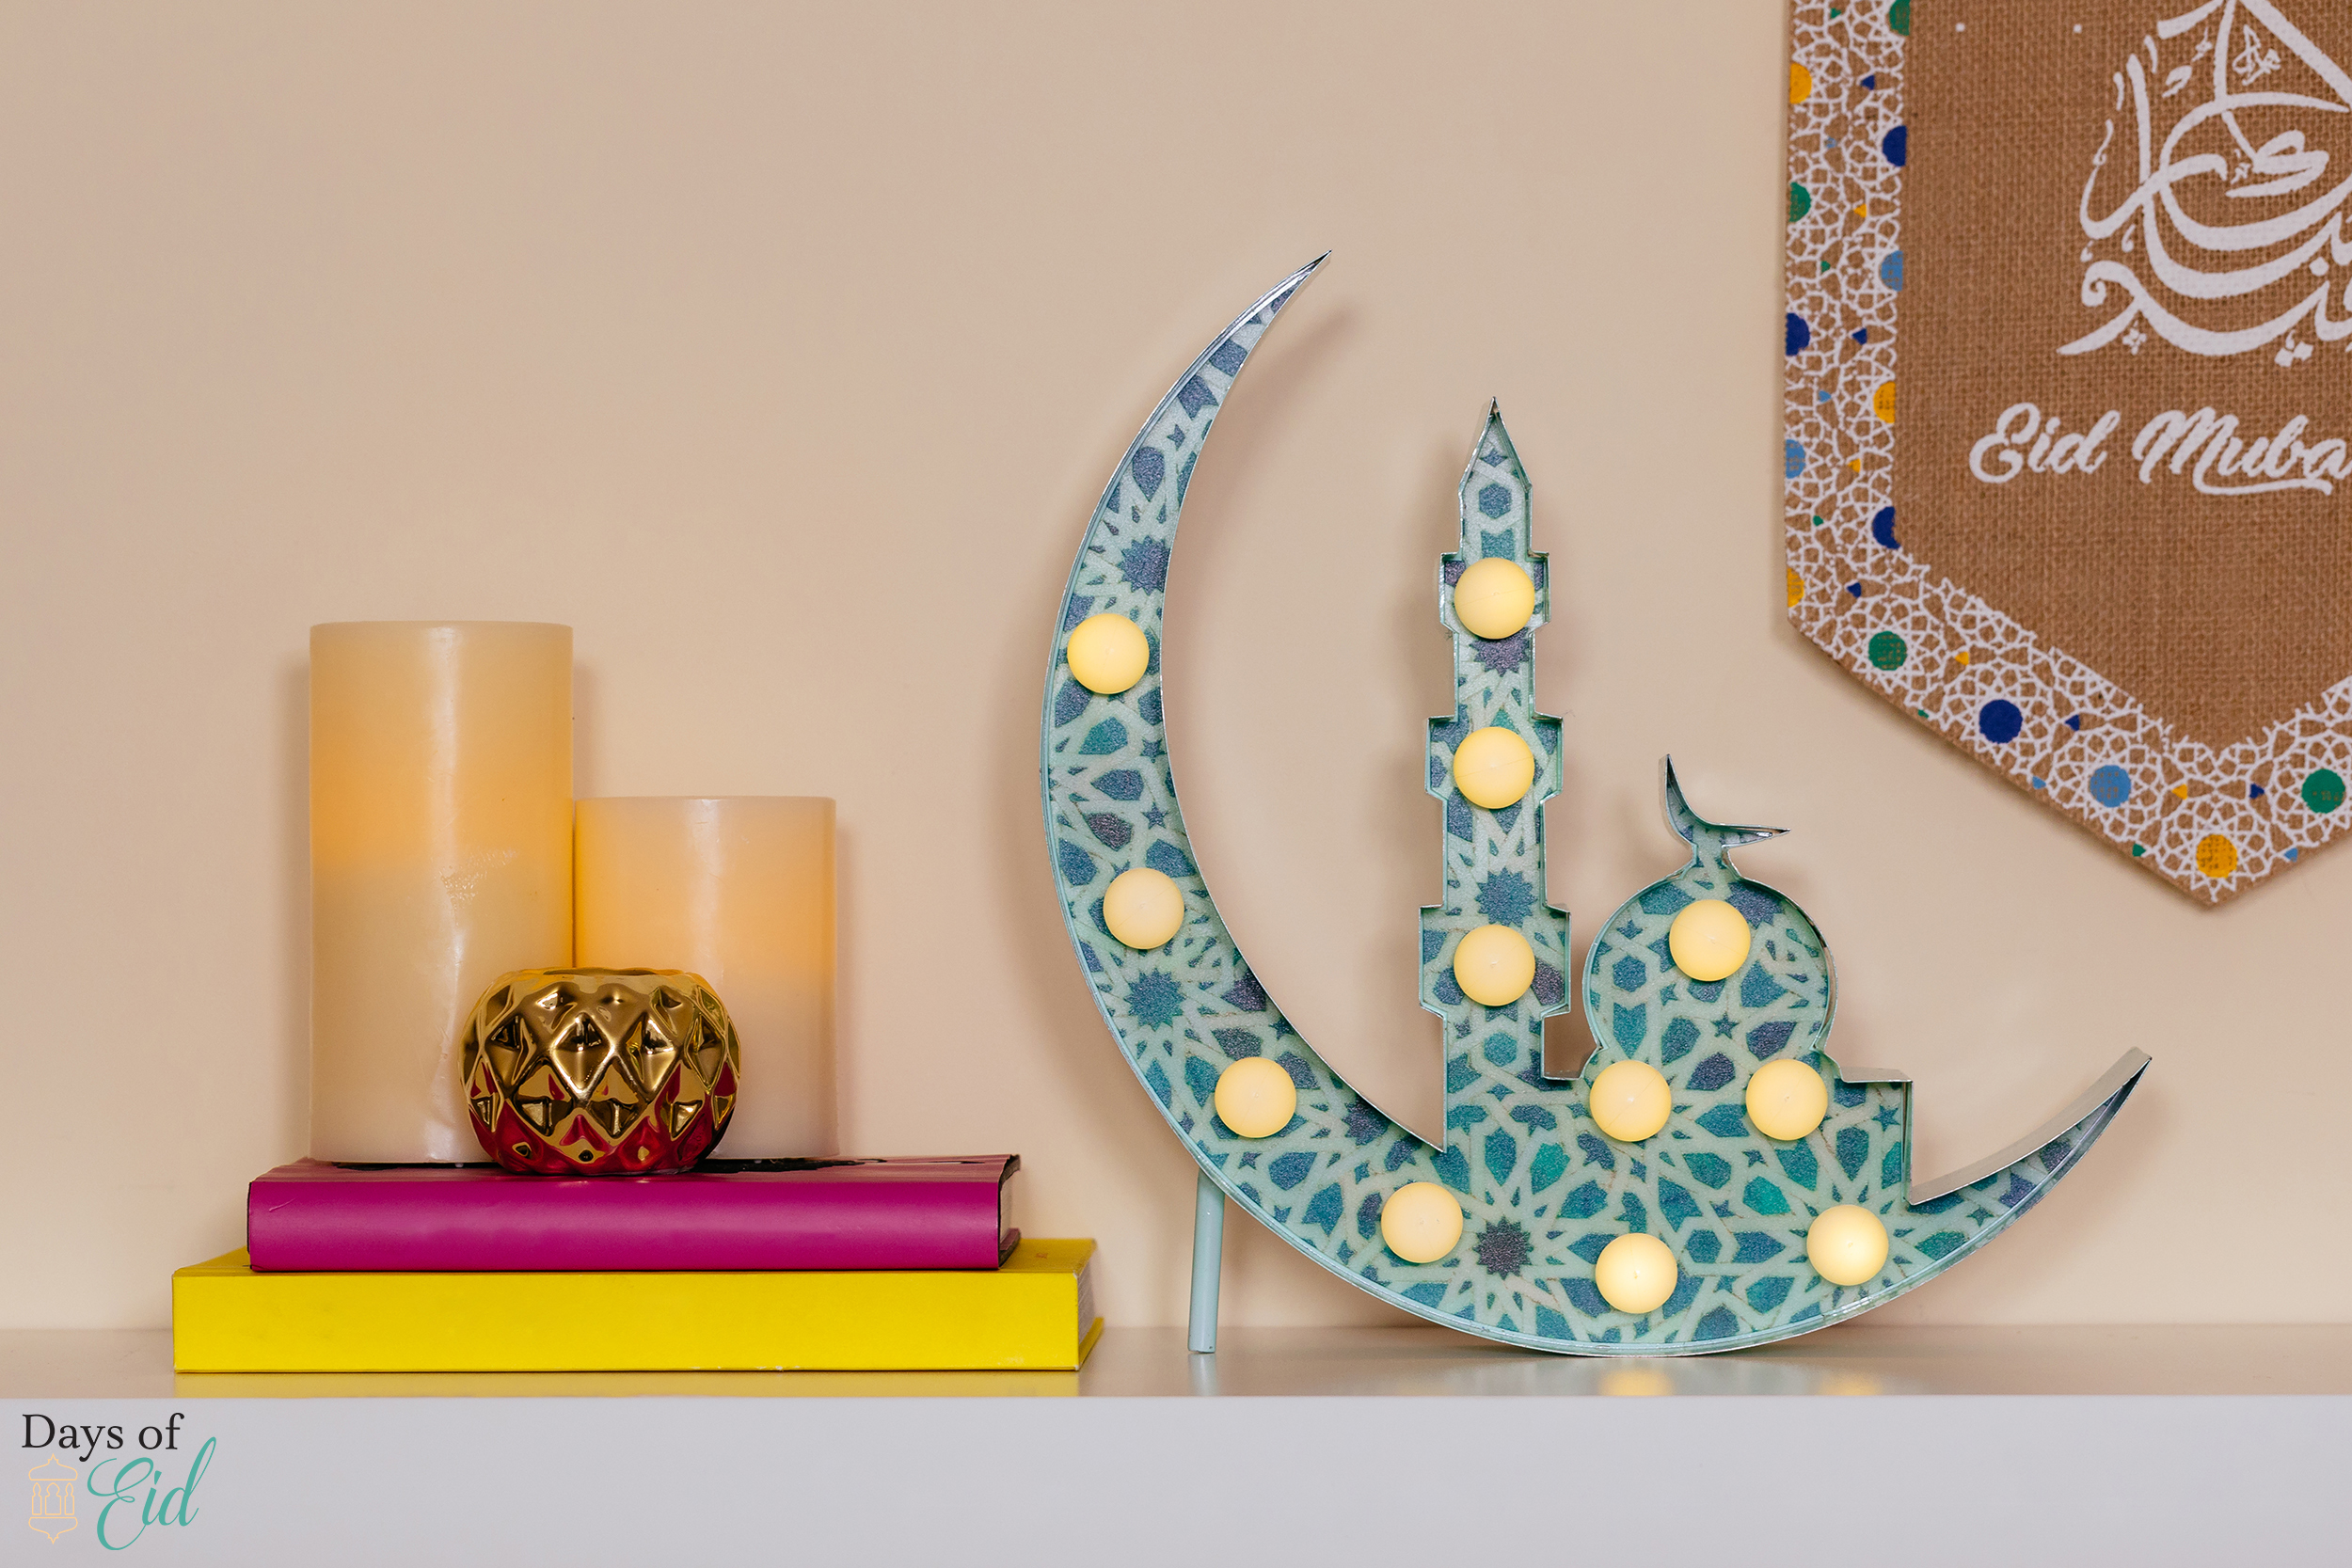 Ramadan-Decor-Unique-Decorations-Days-of-Eid-blue-moon.jpg